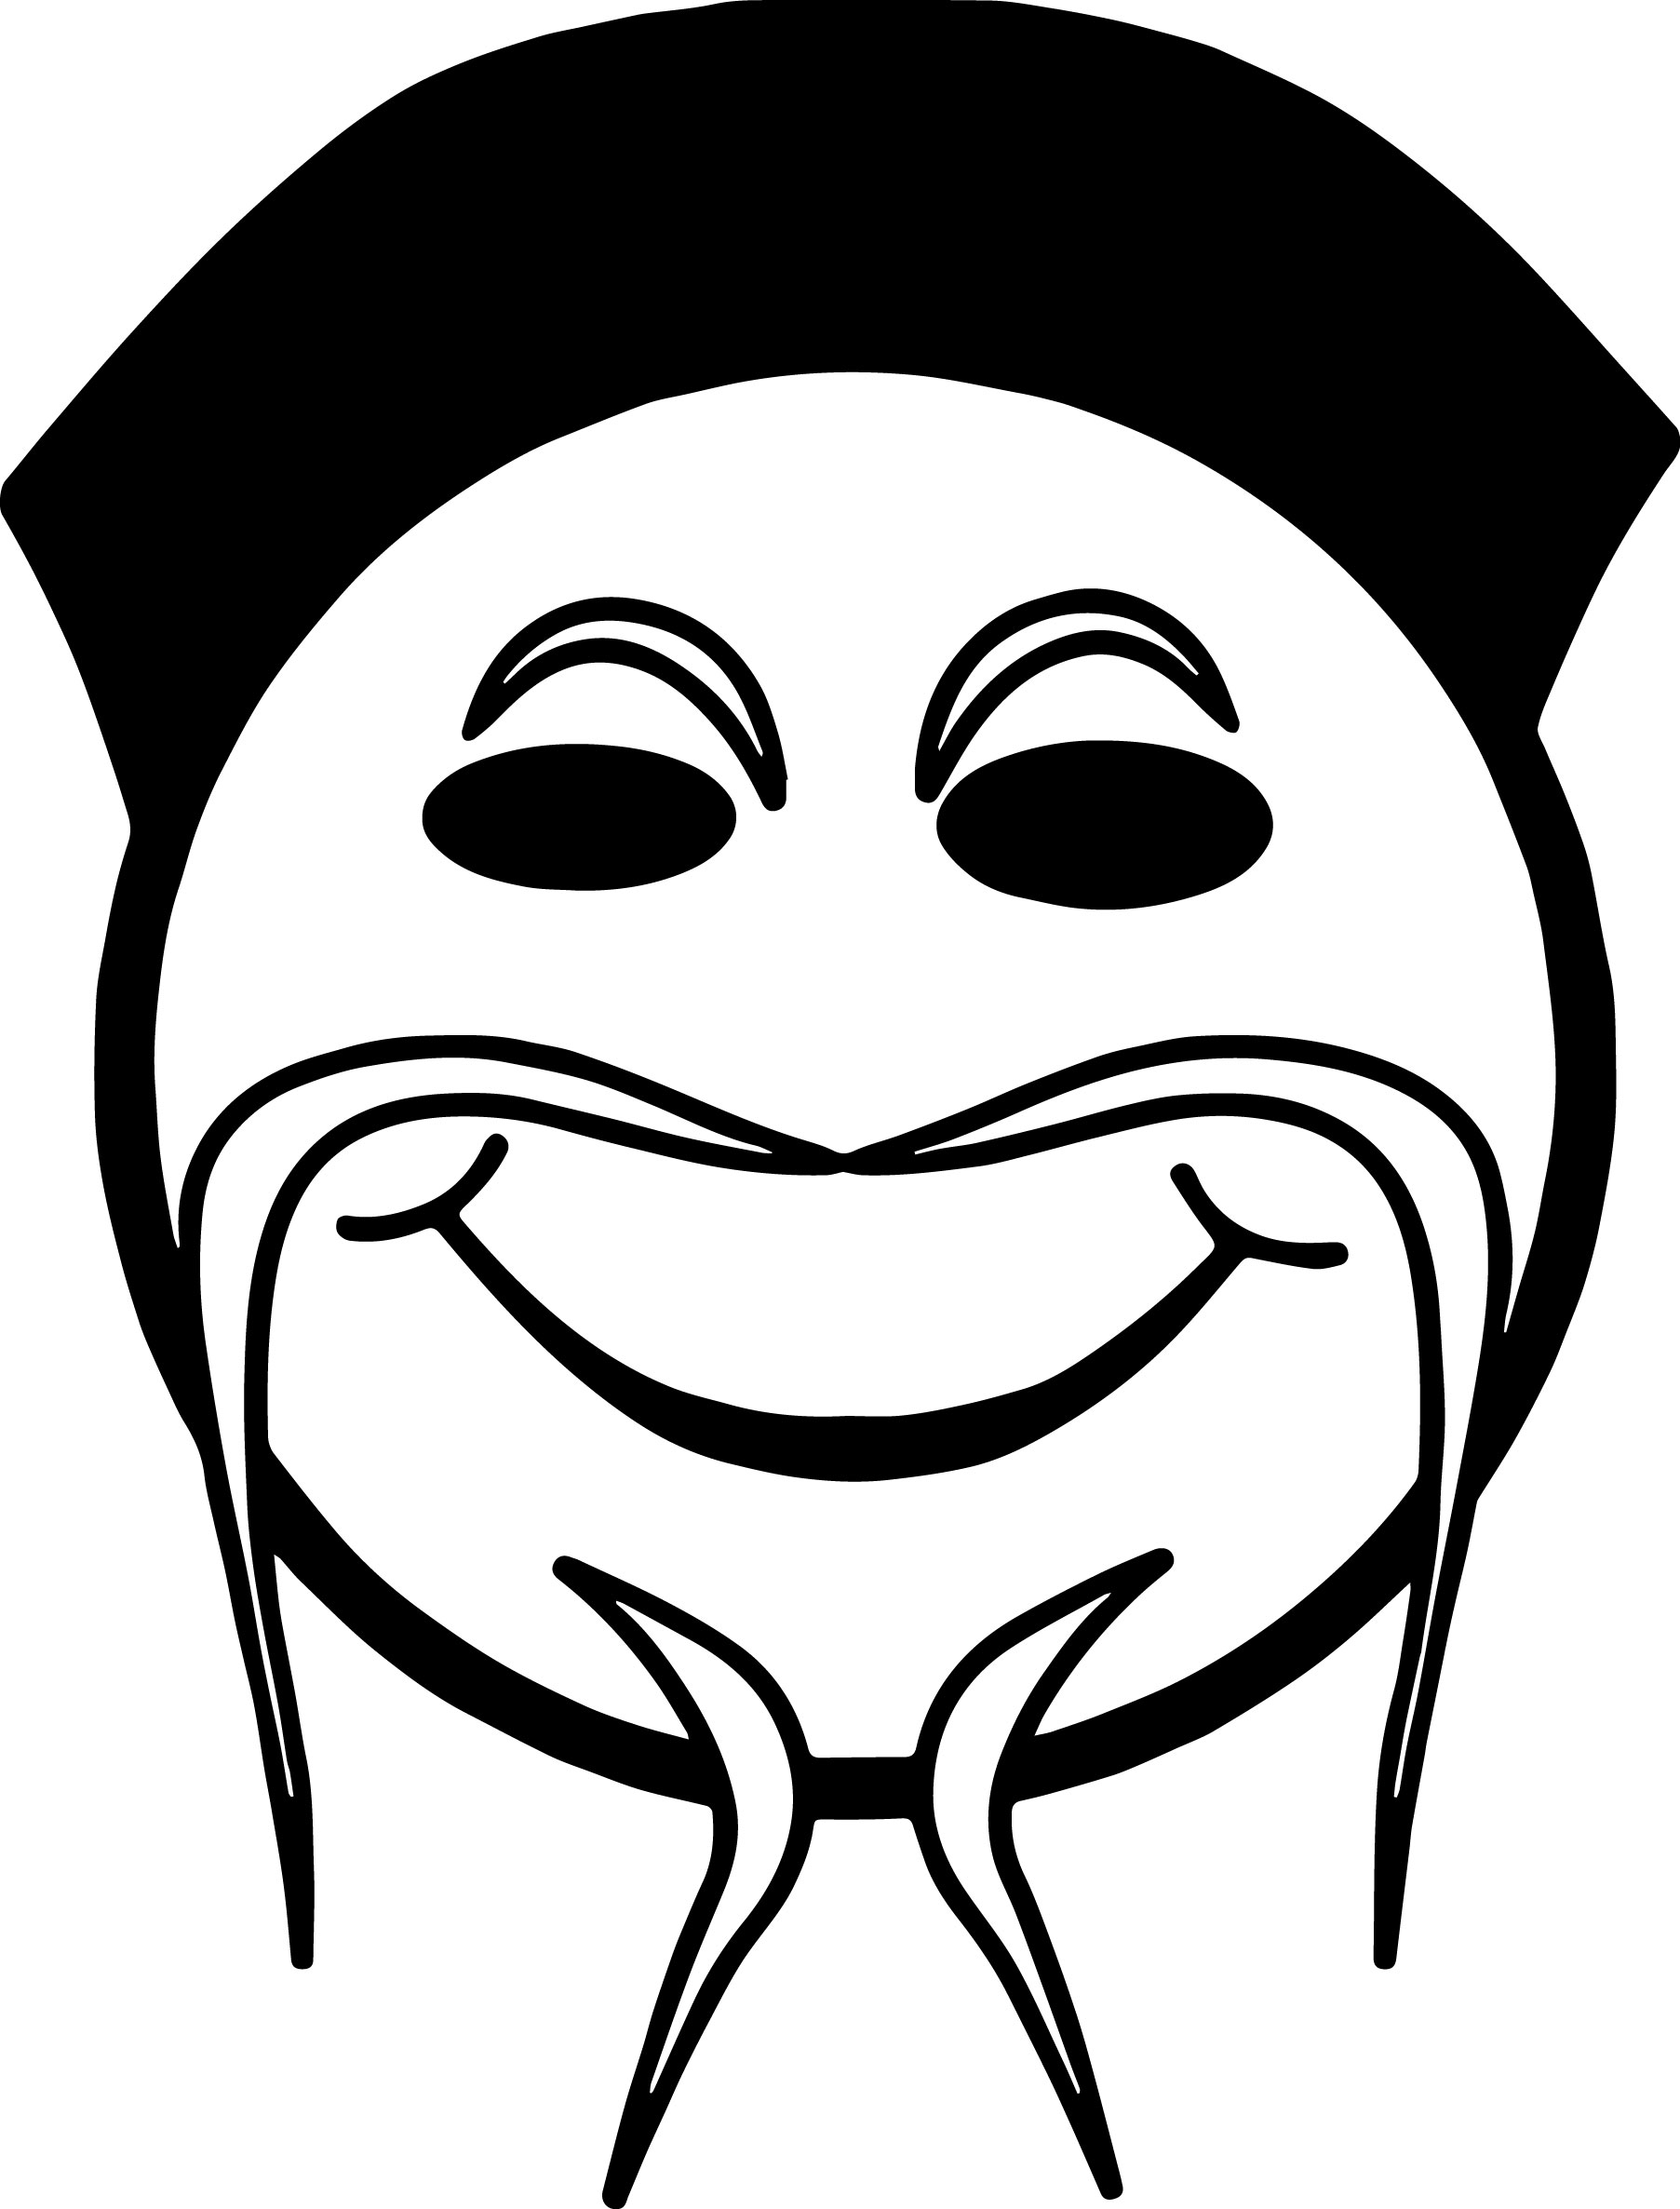 Chinese Emoticon Face Coloring Page Wecoloringpage com